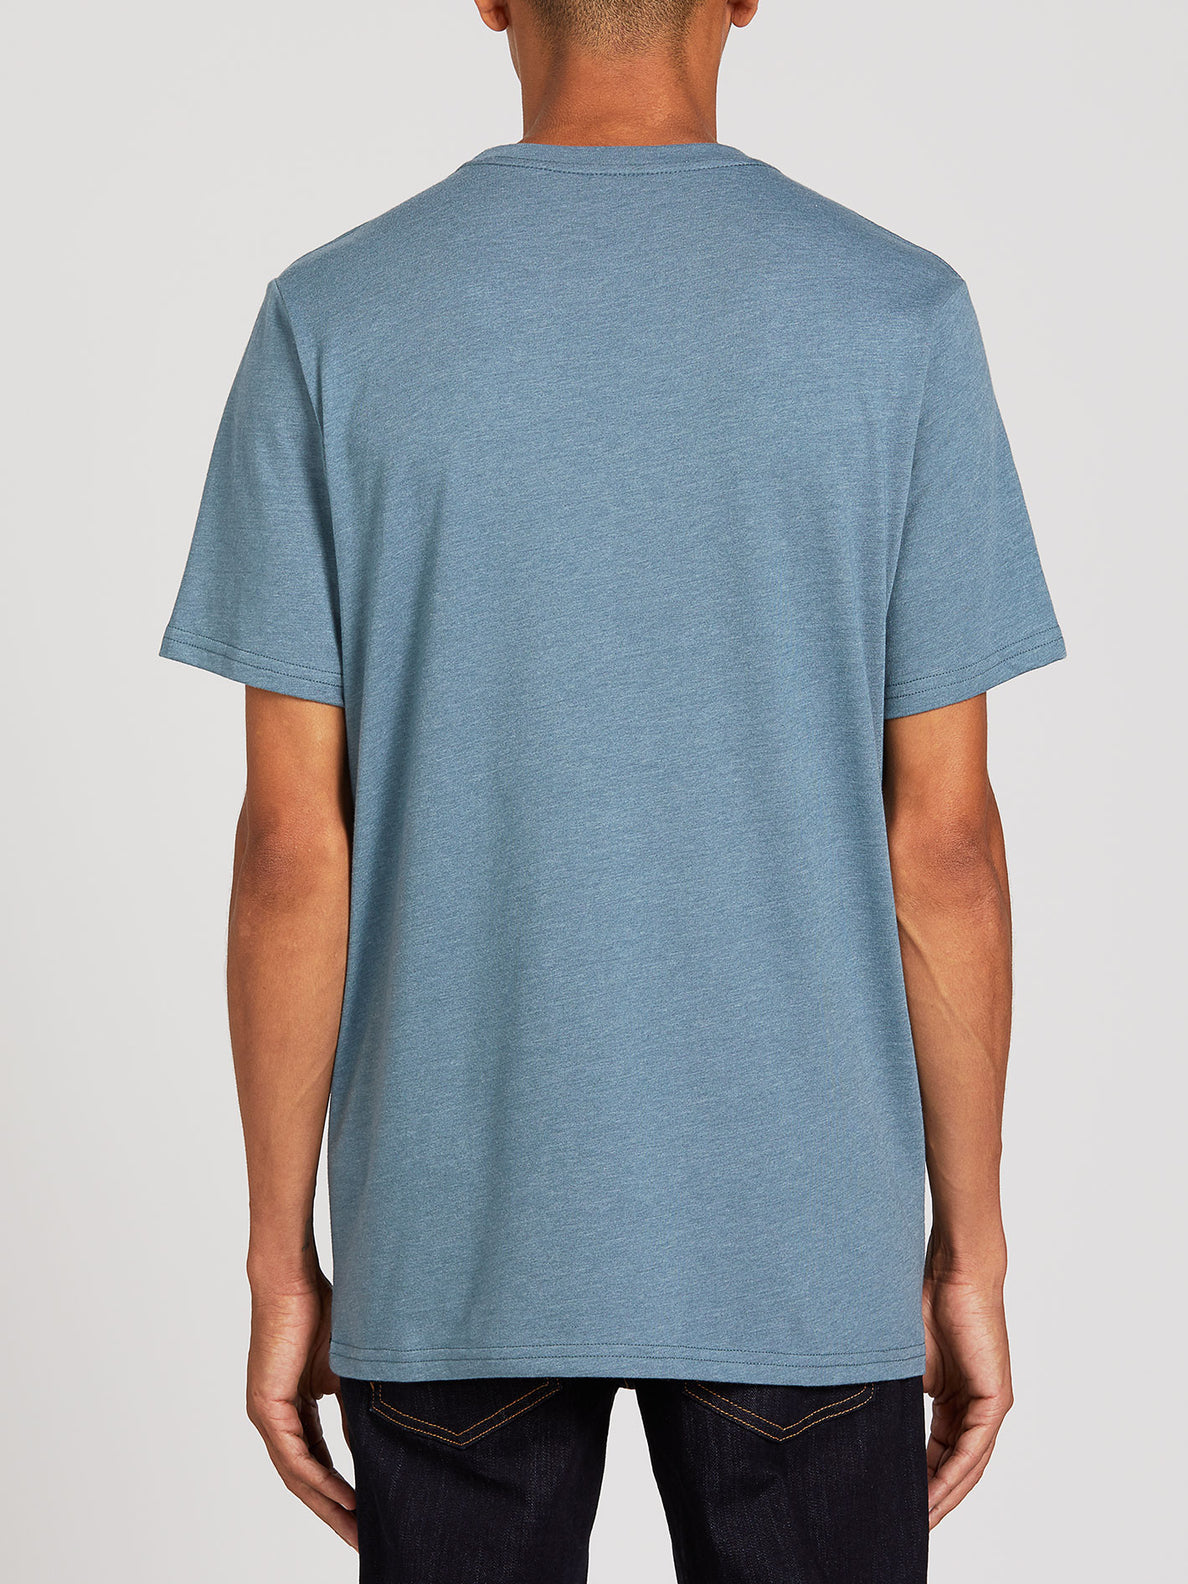 Position Short Sleeve Tee - Stormy Blue (A5722000_STB) [B]